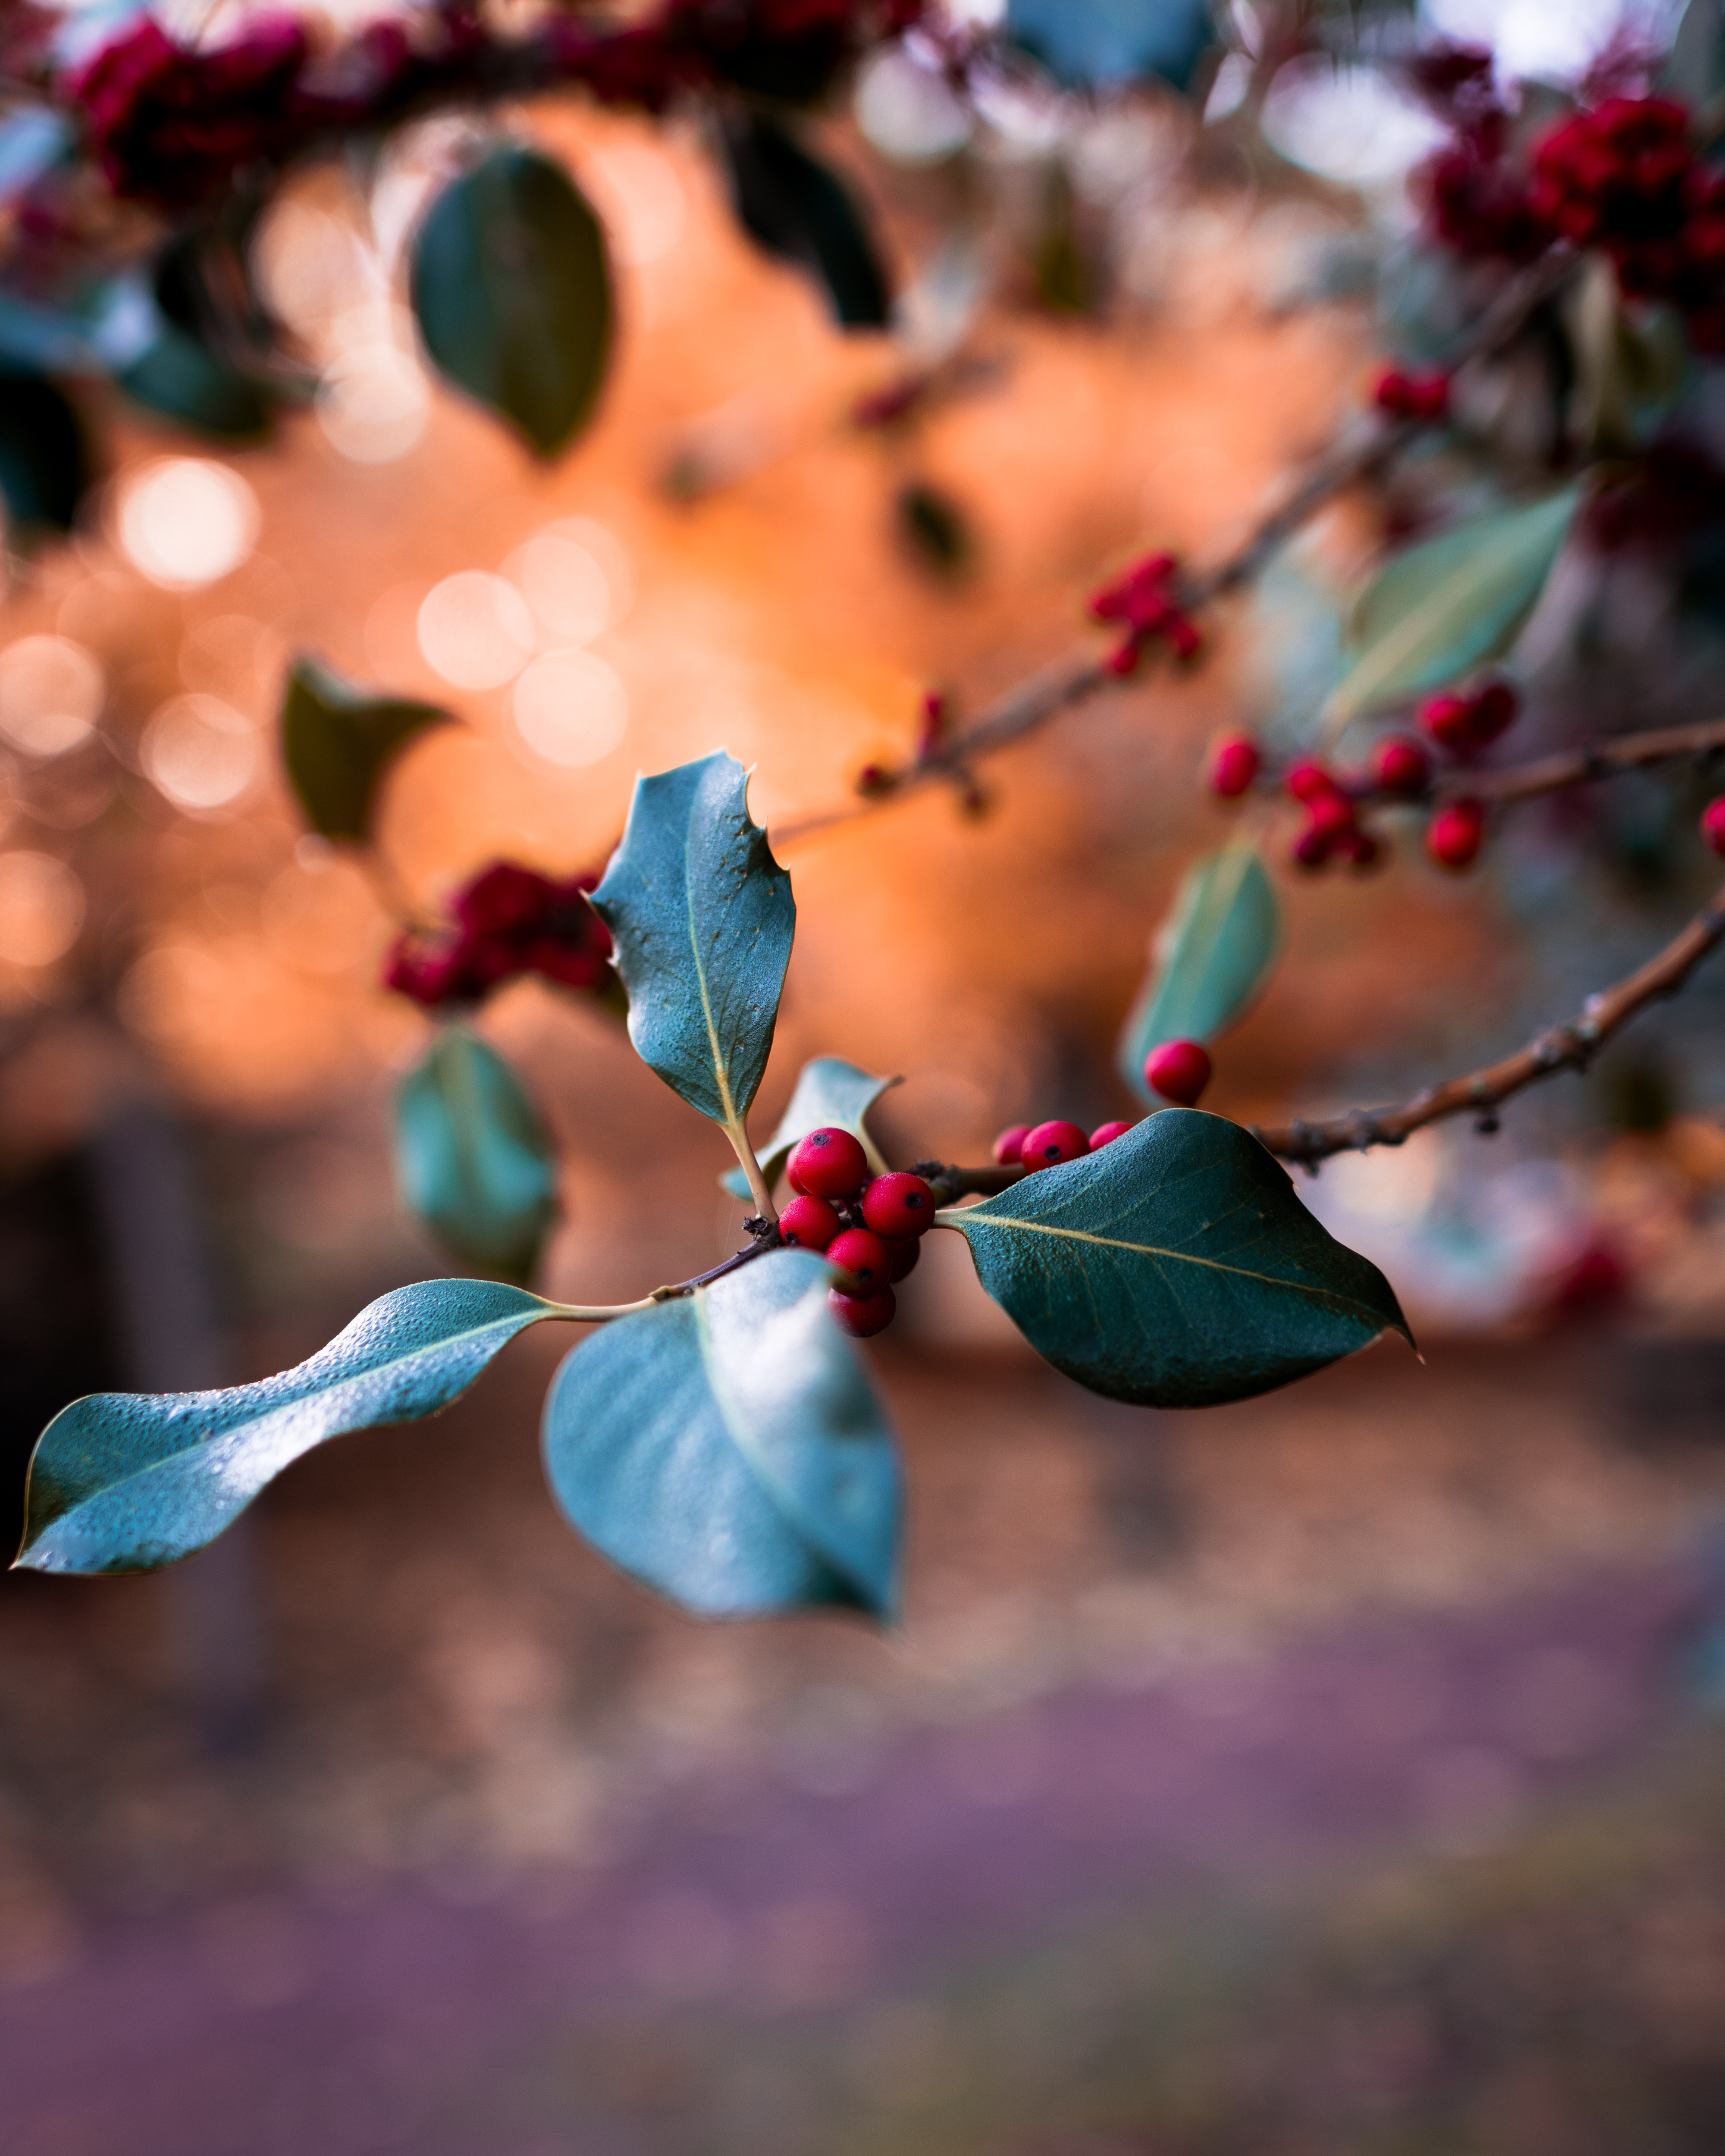 139292 download wallpaper Macro, Branch, Blur, Smooth, Berries screensavers and pictures for free